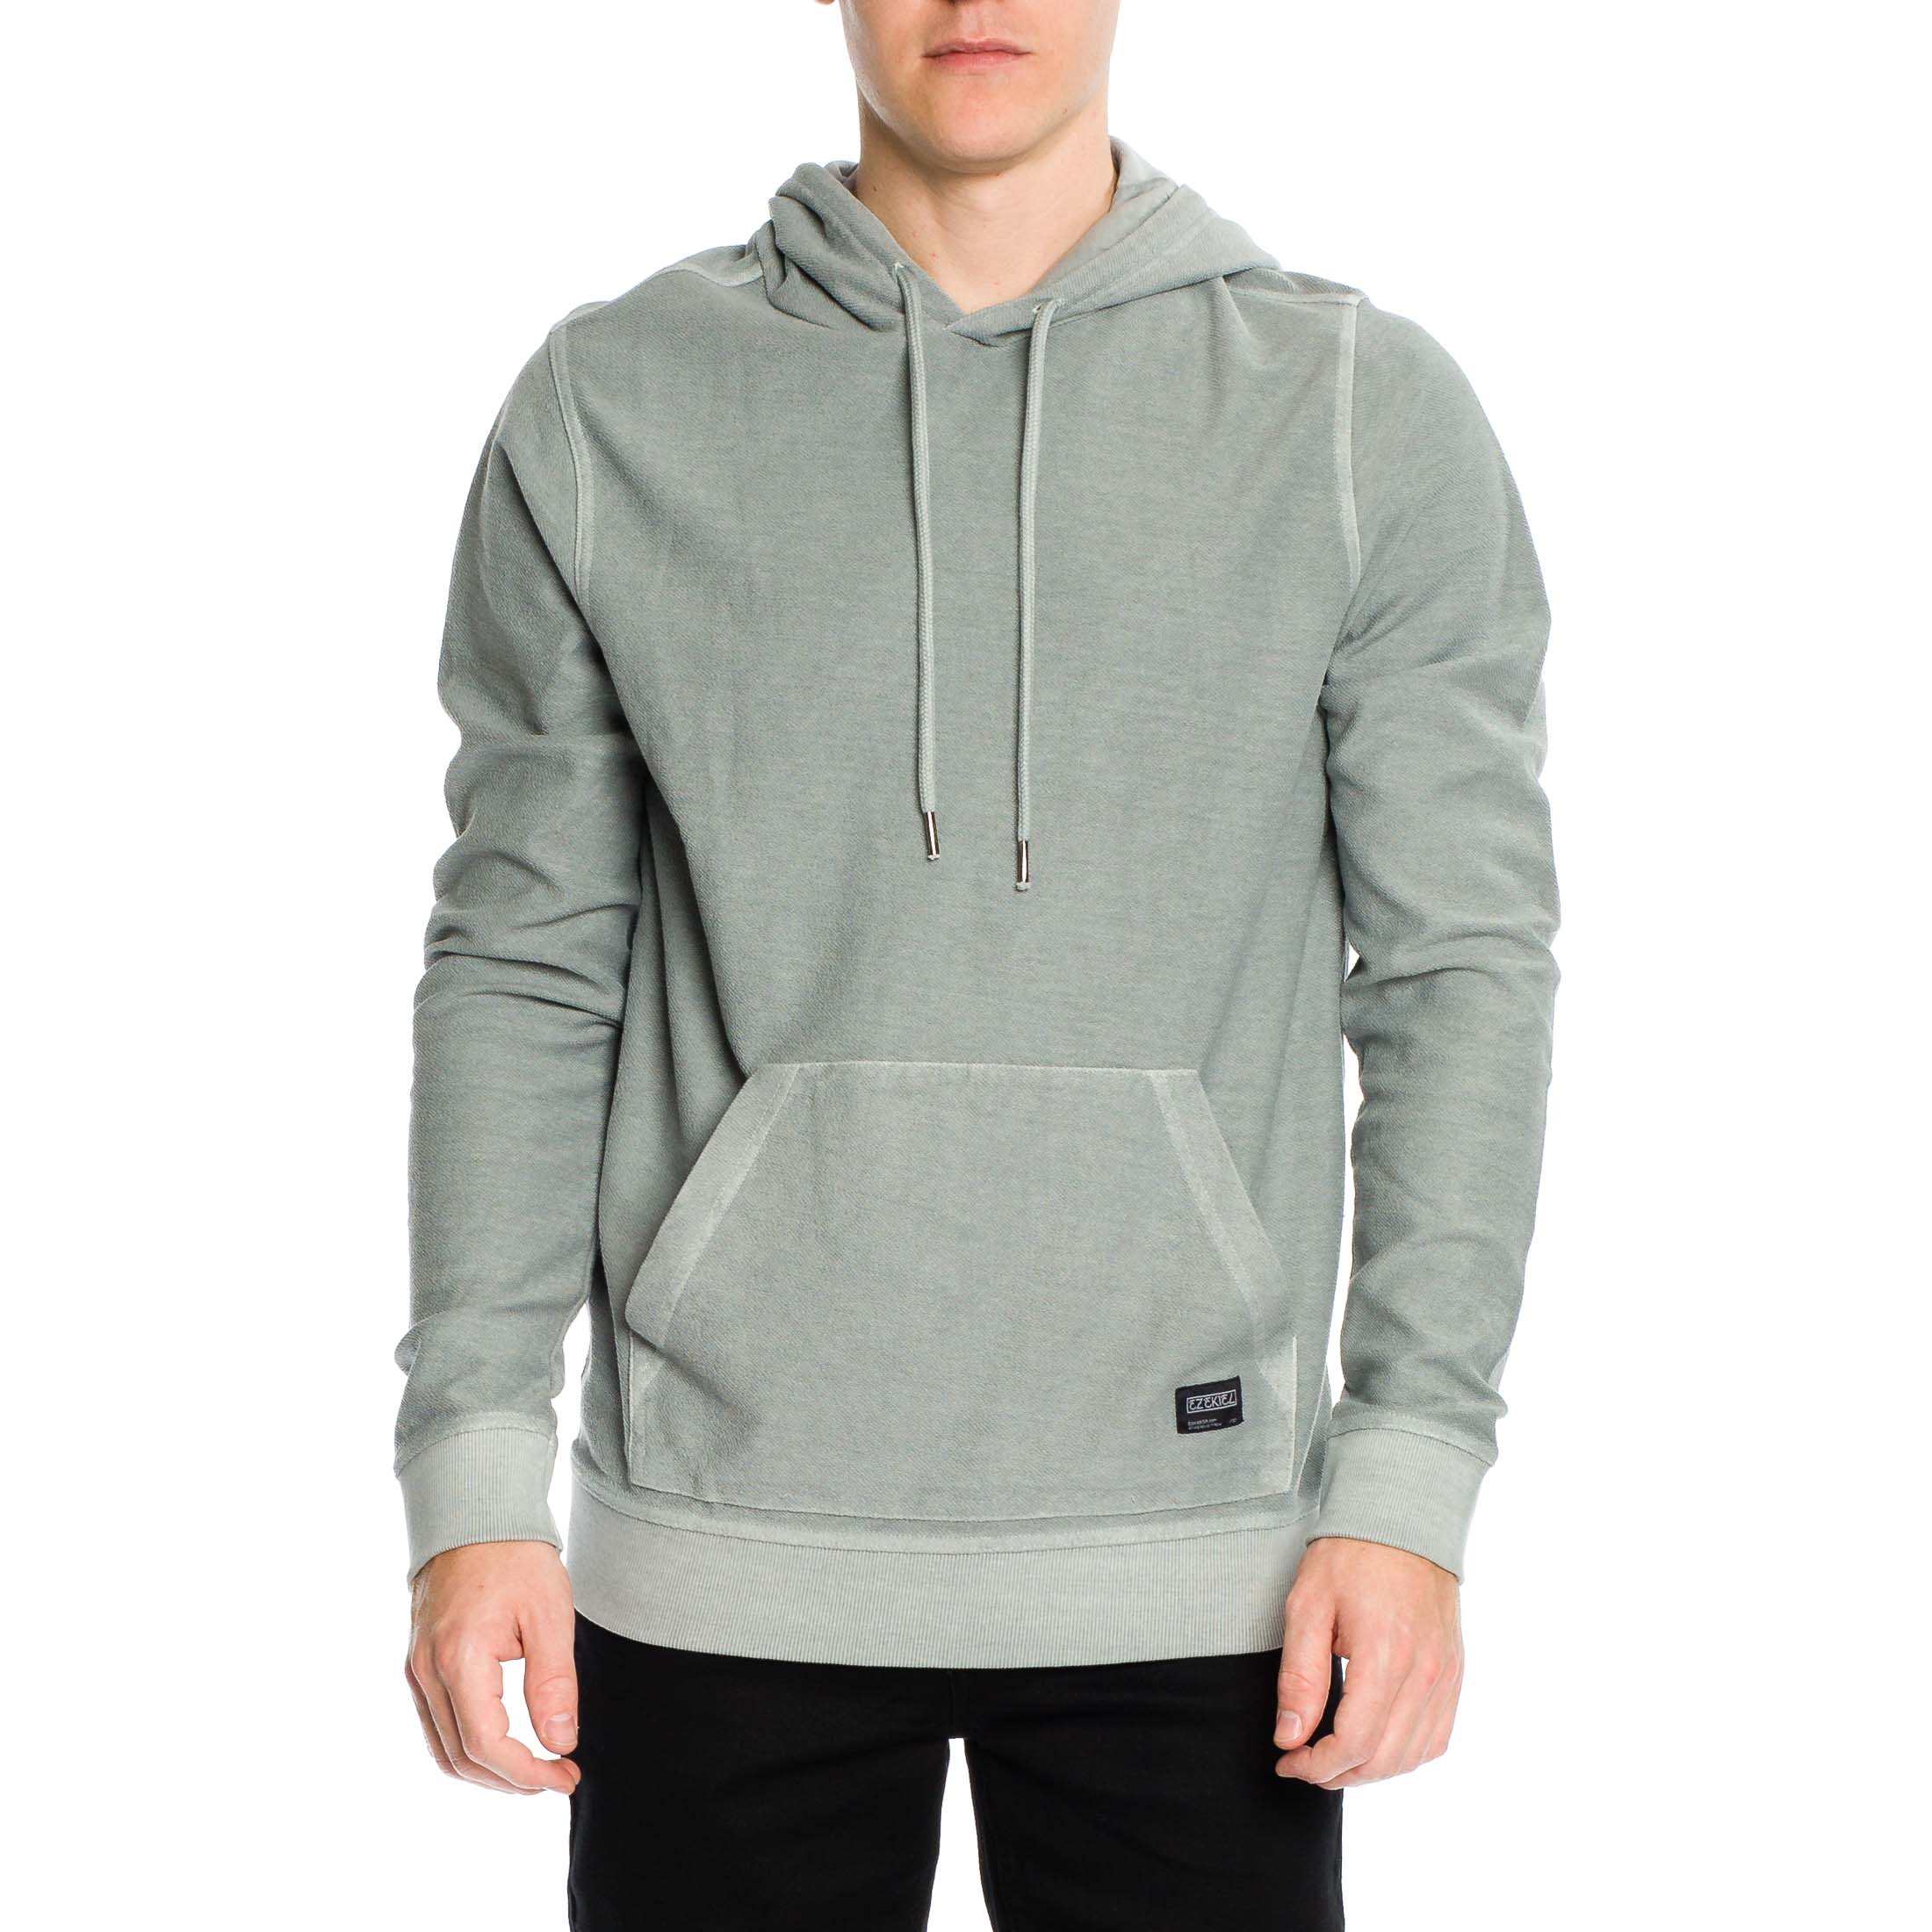 Riptide Pullover - Grey - Ezekiel Clothing